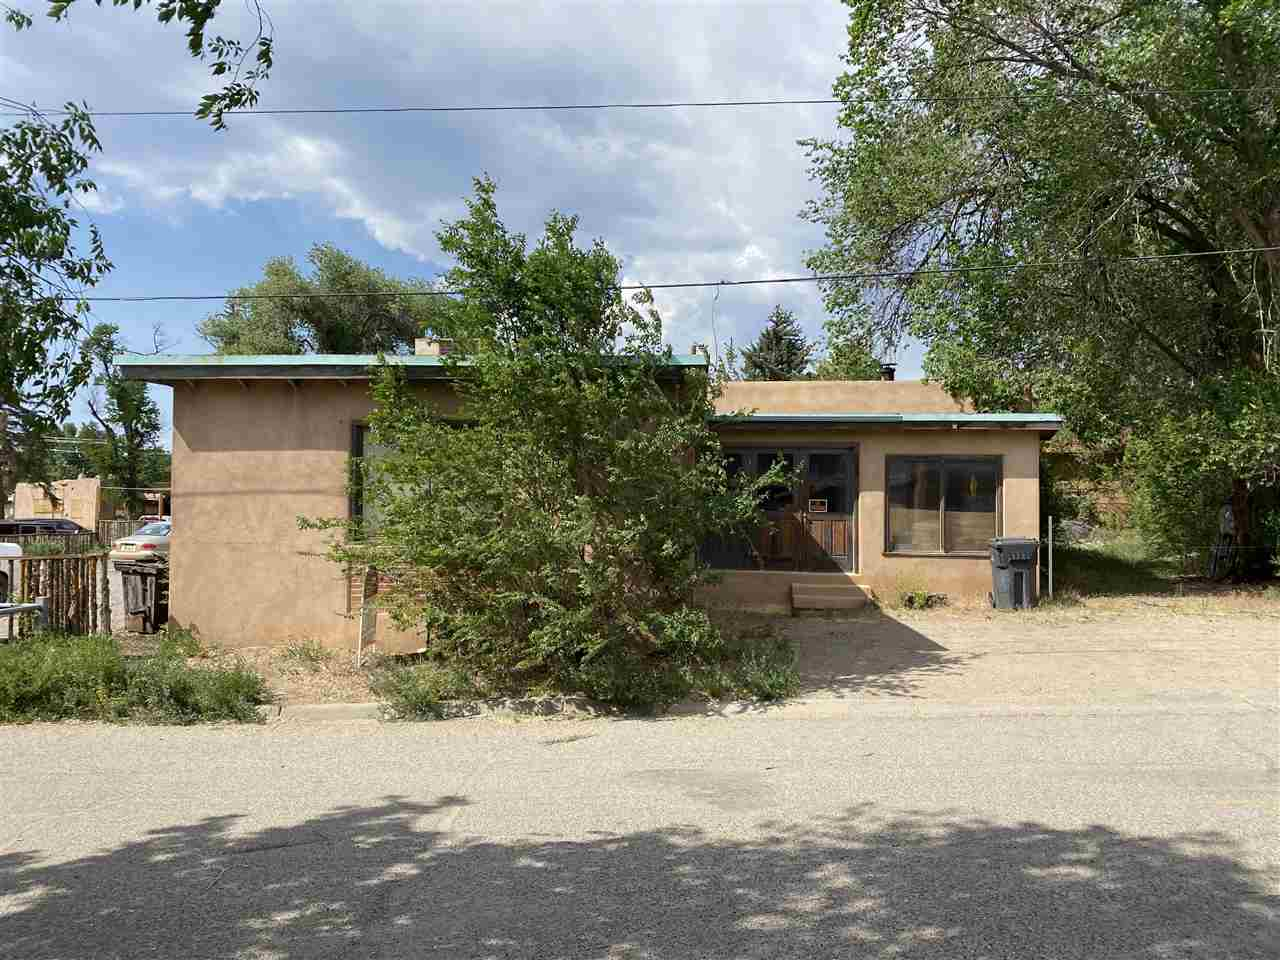 This carpentry shop was built in the early 1930's in the historical district of the Town of Taos and is now ready for its future owner to transform it into something amazing. The main section of this property was built of adobe and vigas, and offers an open floorplan that lends itself to many possibilities. To sweeten the deal, it also has a kitchen, office and half bath. Main section has a woodstove.  Office, kitchen and bathroom are heated with forced air and cooled with an air conditioner. Shop is located right off of Brooks Street, but has land on the east and around the back for building or parking. The location of this property is ideal, and the possibilities are endless. Schedule your showing today!